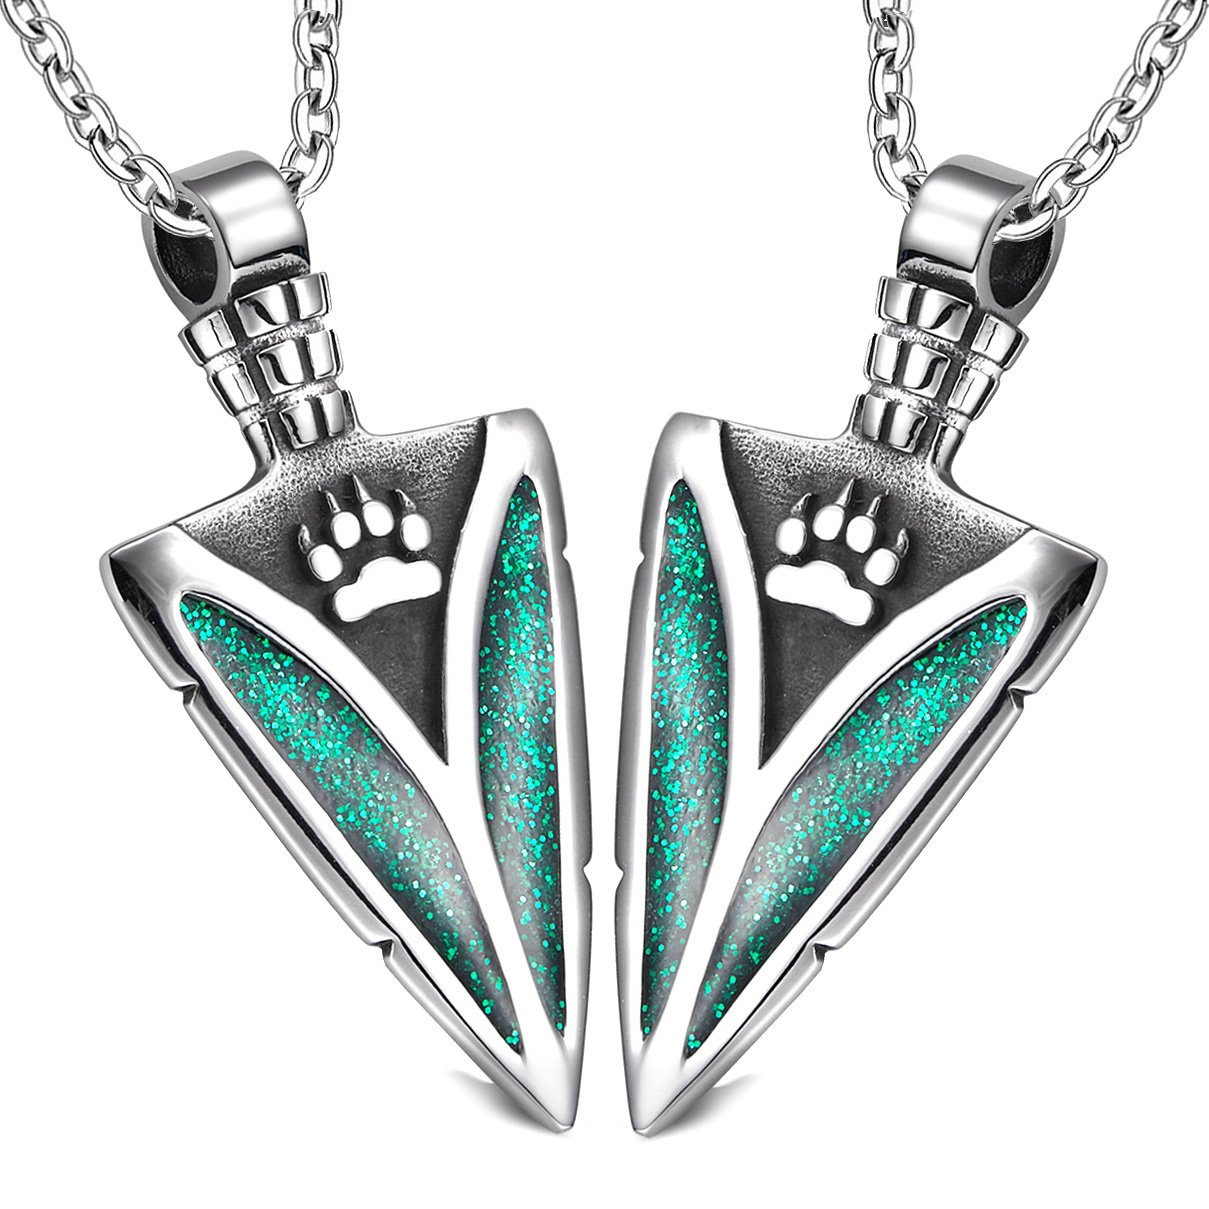 Arrowhead Wild Wolf Paw Love Couples Best Friends Set Protection Amulets Sparkling Royal Green Necklaces